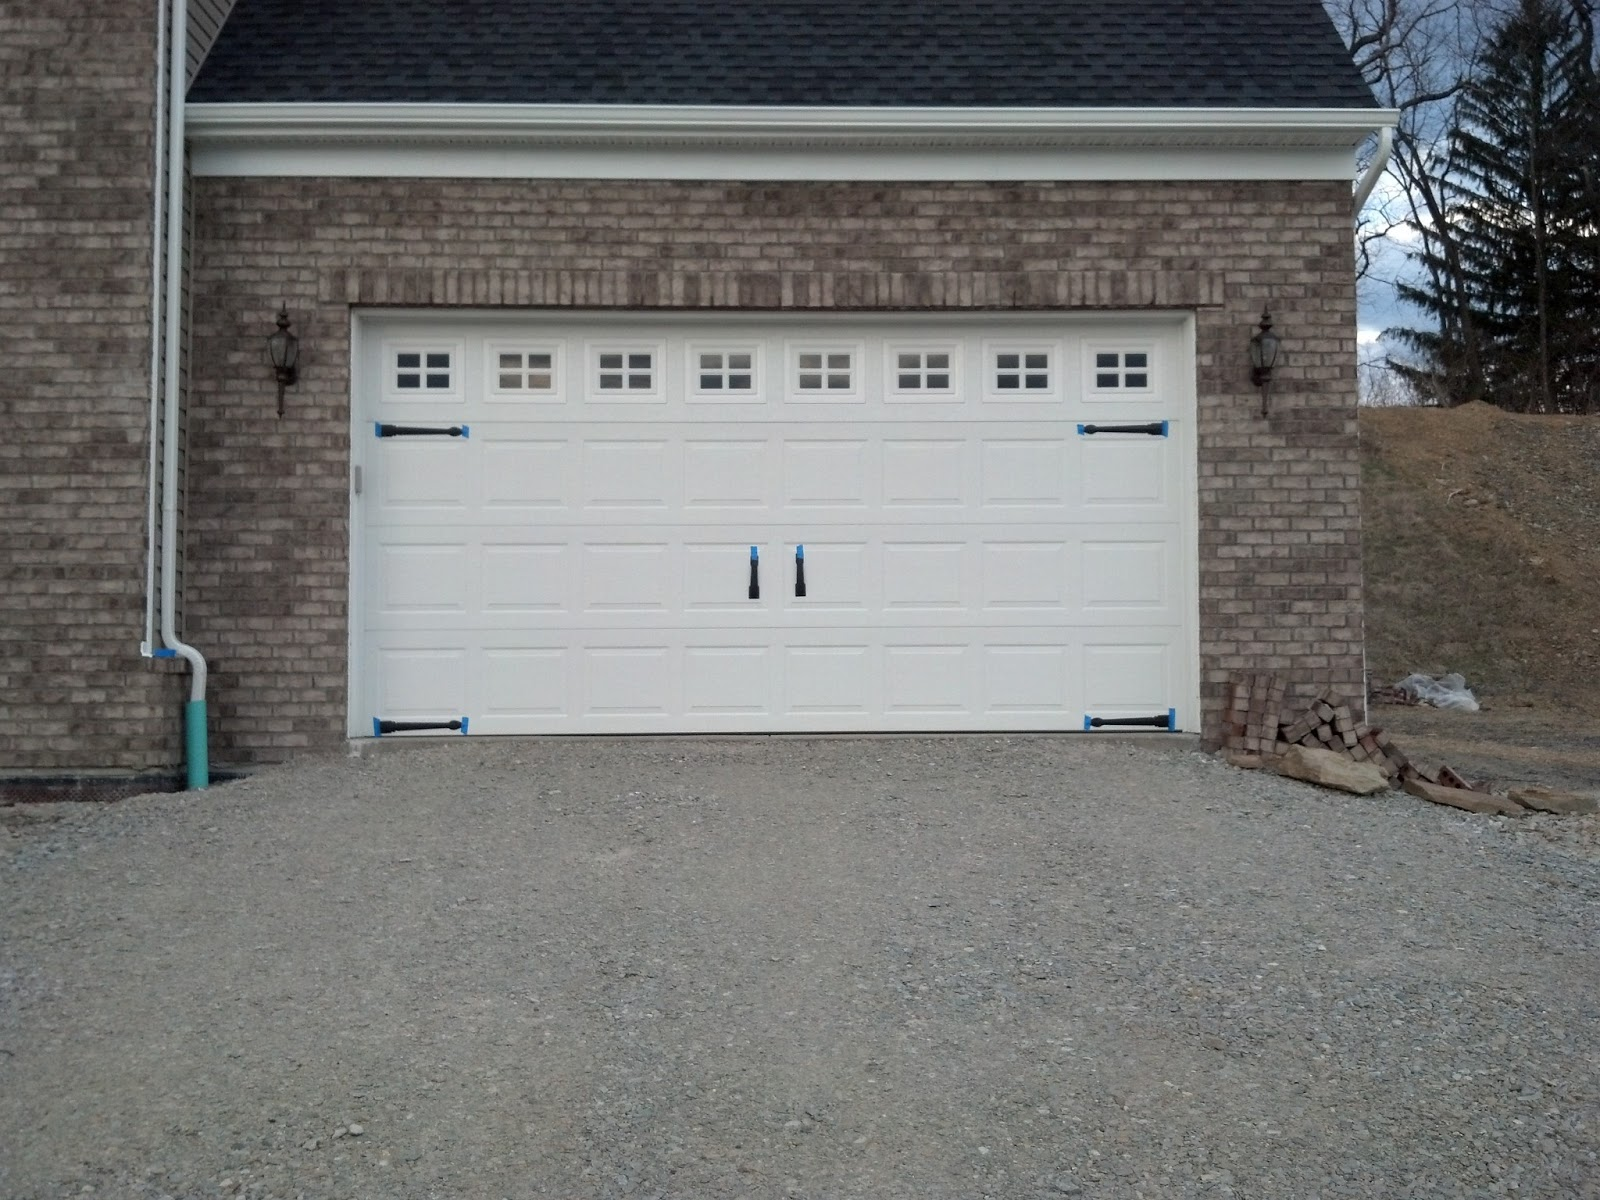 Savoy Ryan Home Shutters Vs No Shutters Garage